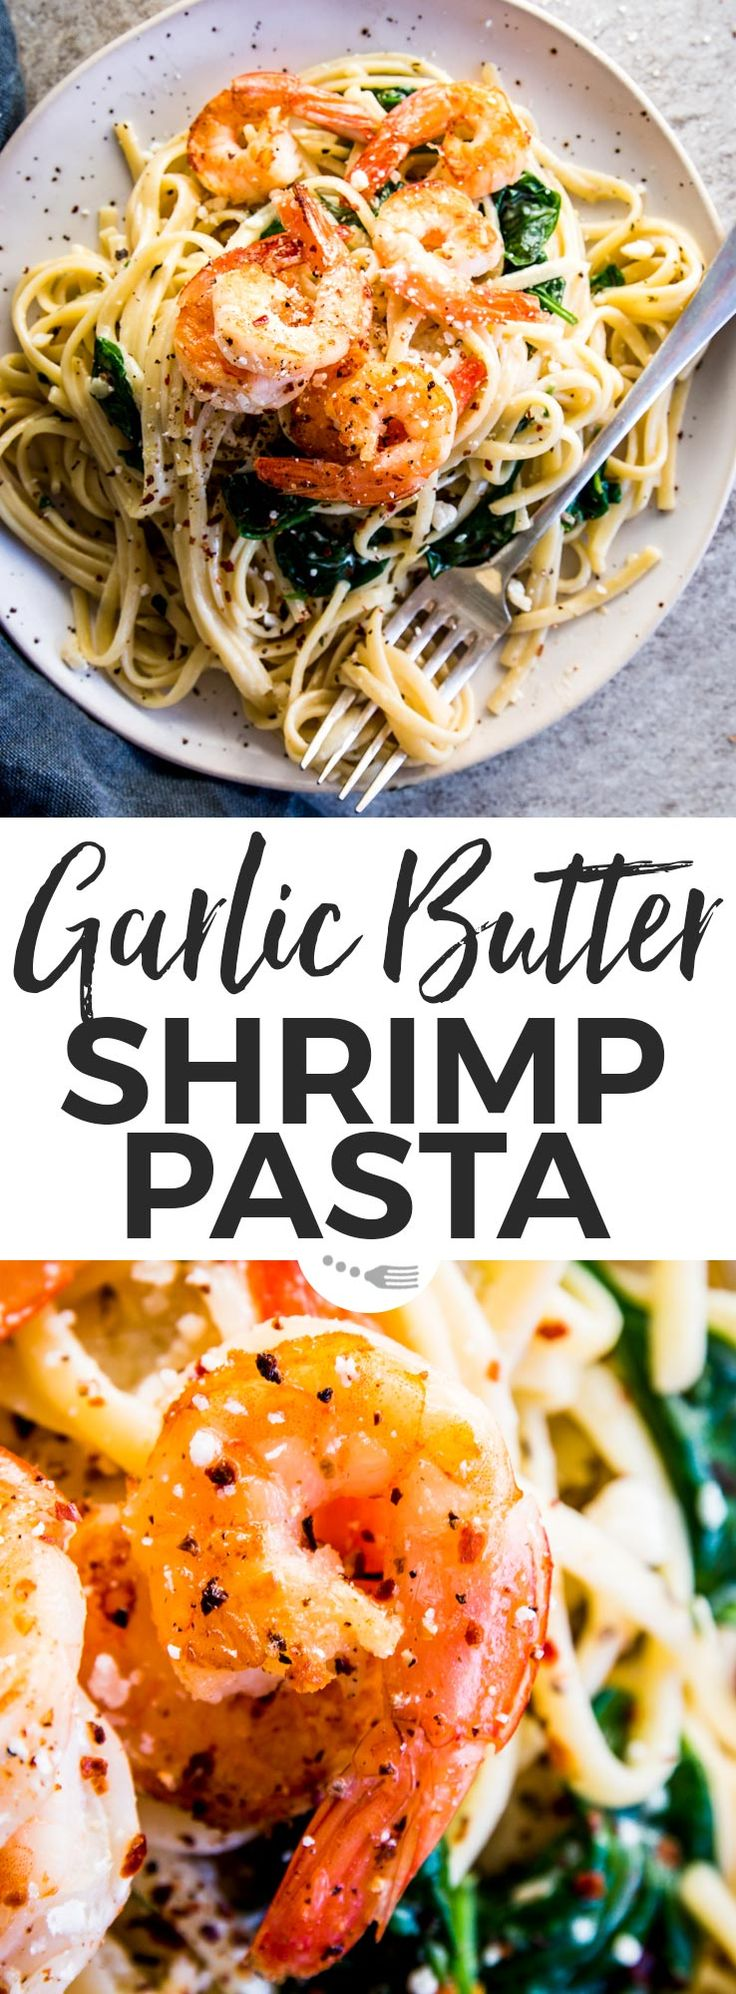 This Garlic Butter Shrimp Pasta is the quick weeknight dinner you've been looking for! Linguine smothered in a creamy sauce full of lemon and garlic flavors, tossed with browned shrimp. Quick to make (just 20mins!) and fancy enough for date night in or dinner party guests - the key to every pasta lover's heart!